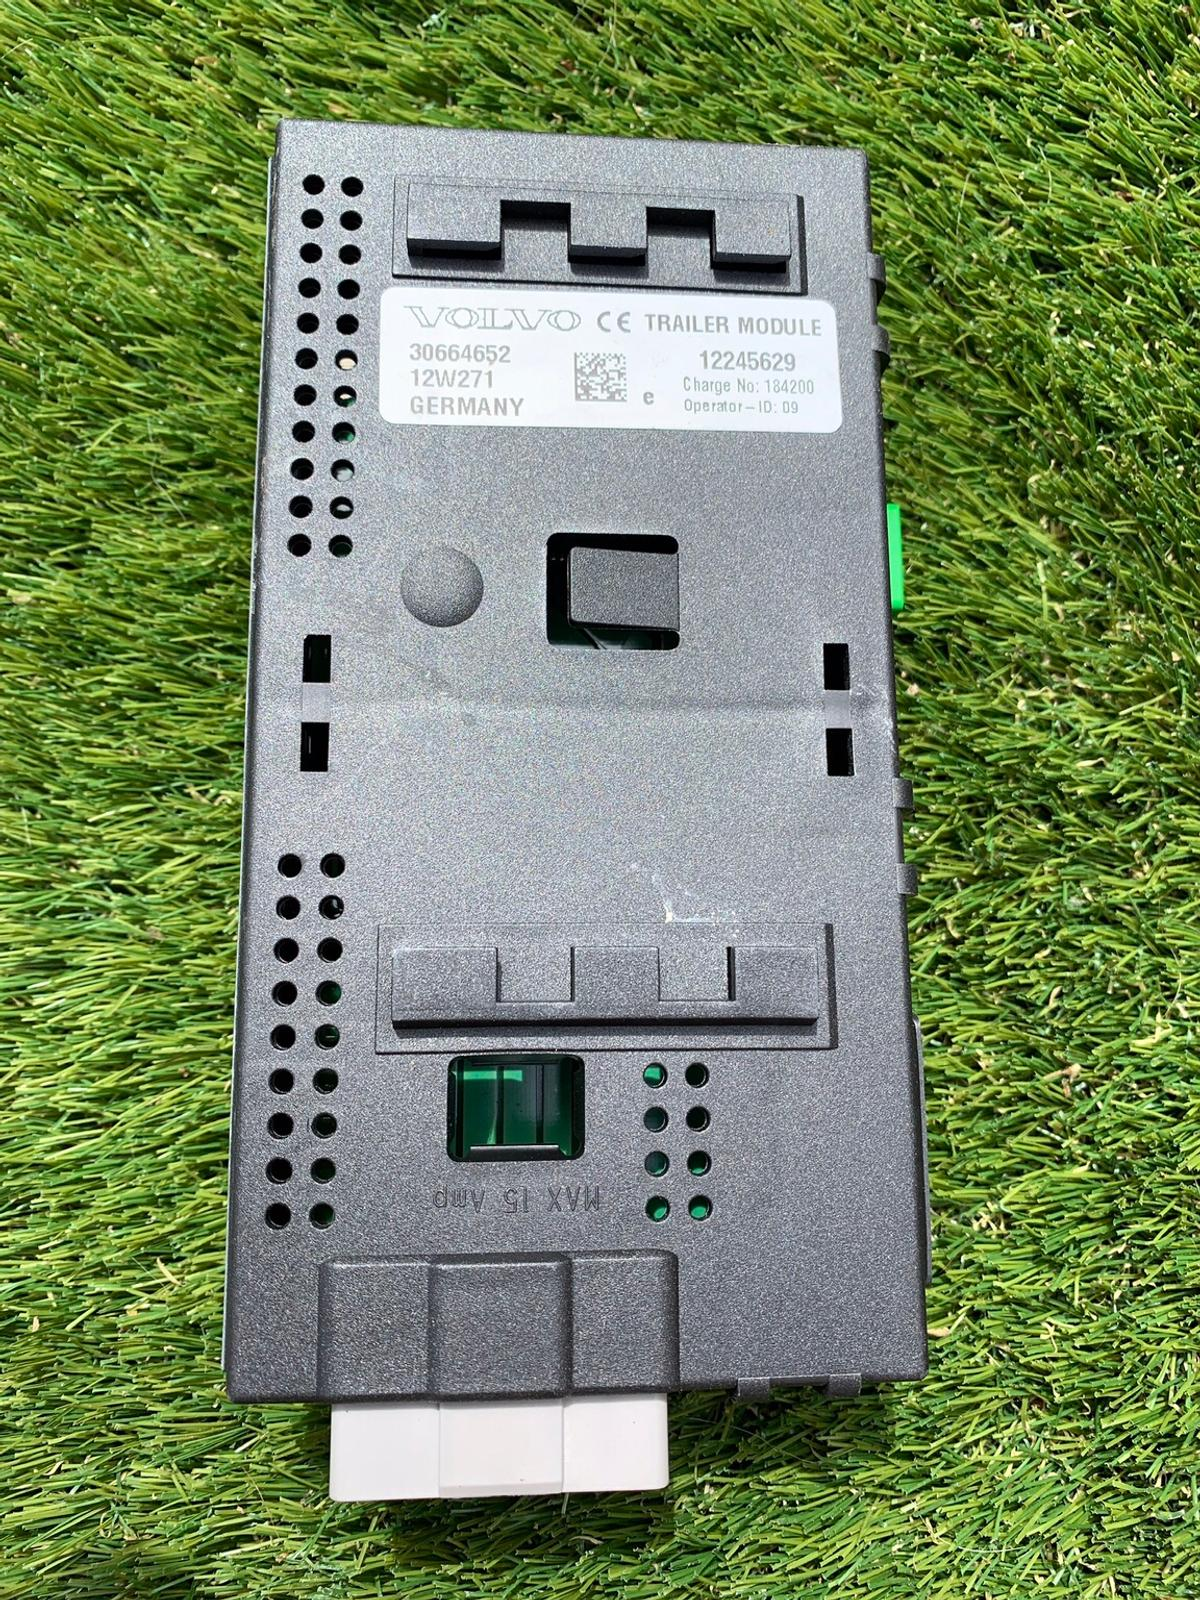 Genuine used Volvo Tow control module in B80 Redditch for